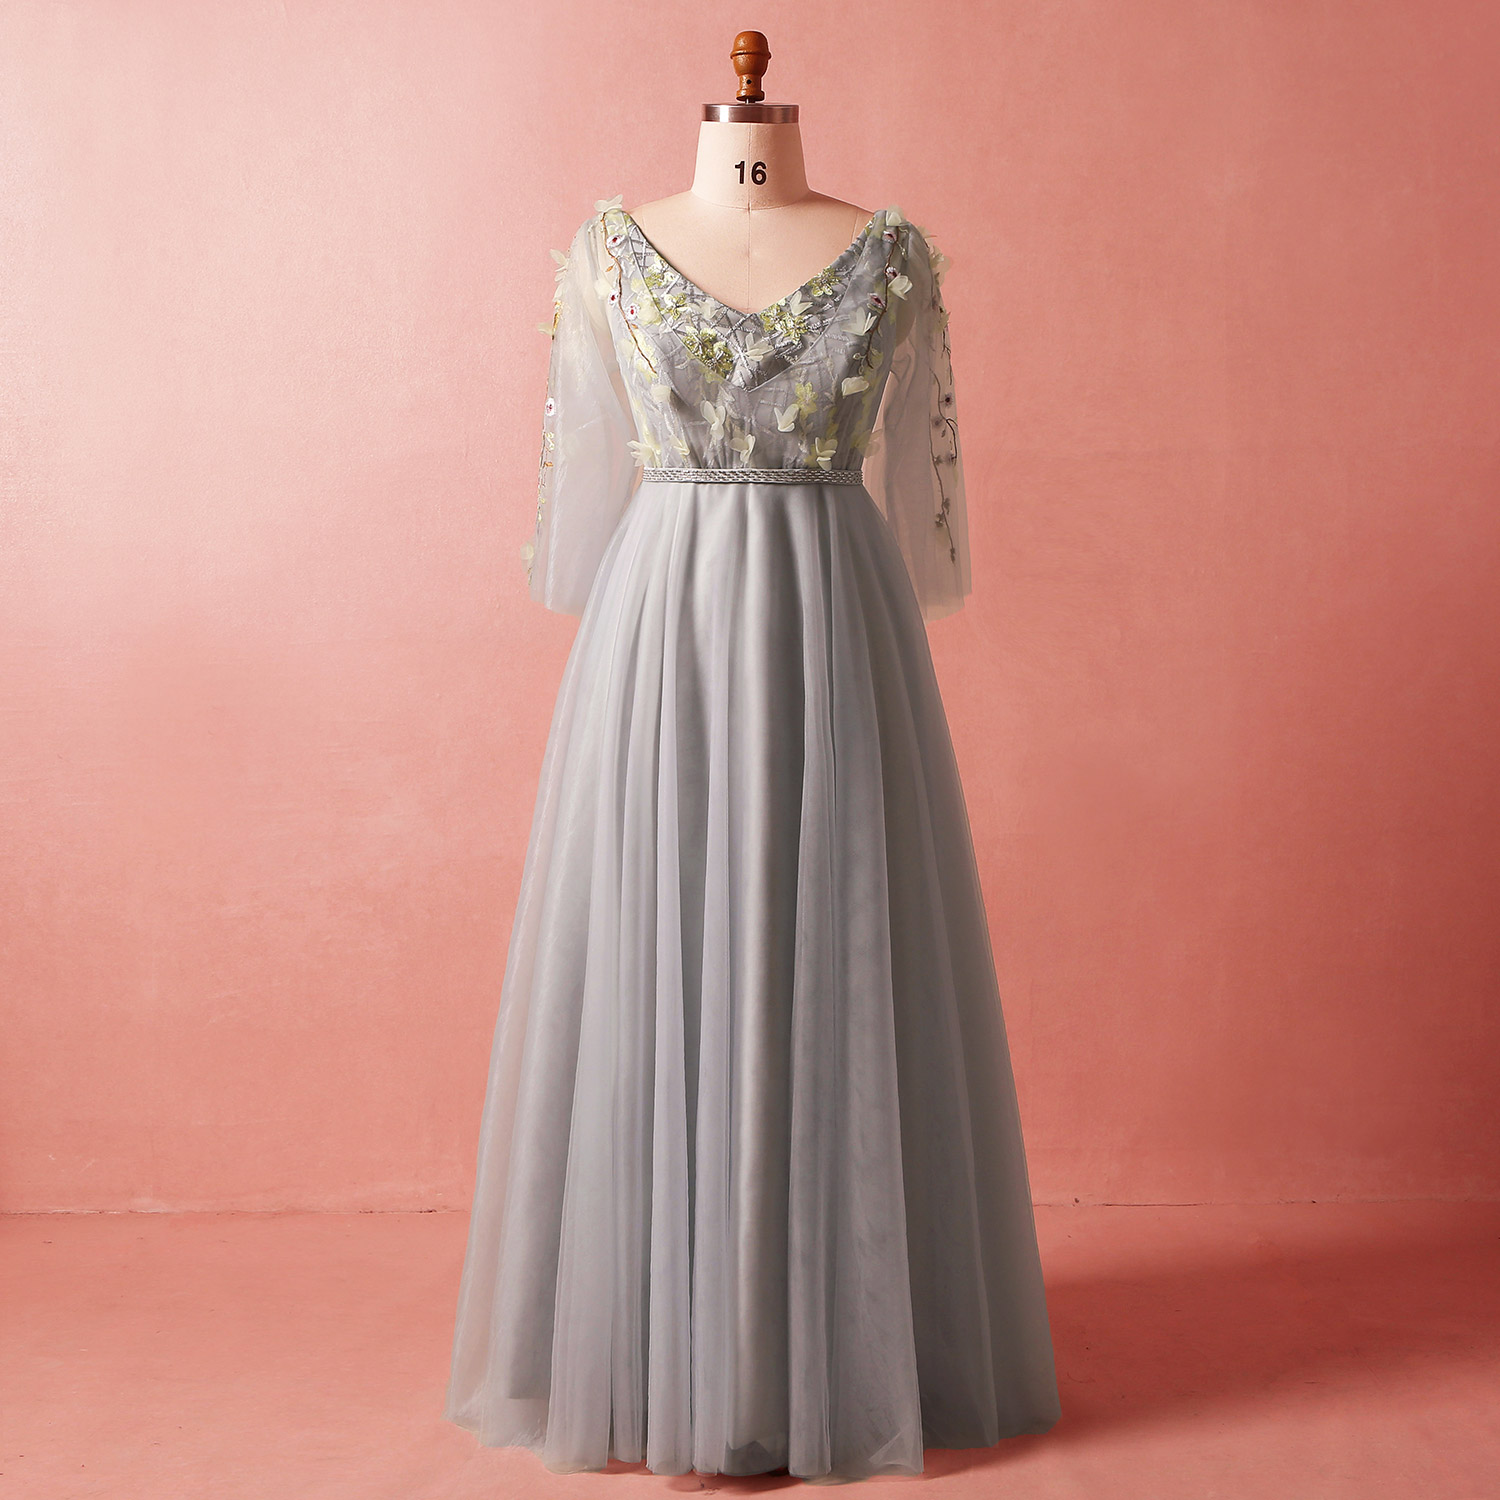 Evening Dresses A-line V-neck Floor-length Llusion Appliques Wedding Guest Party Gowns Long Prom Dress